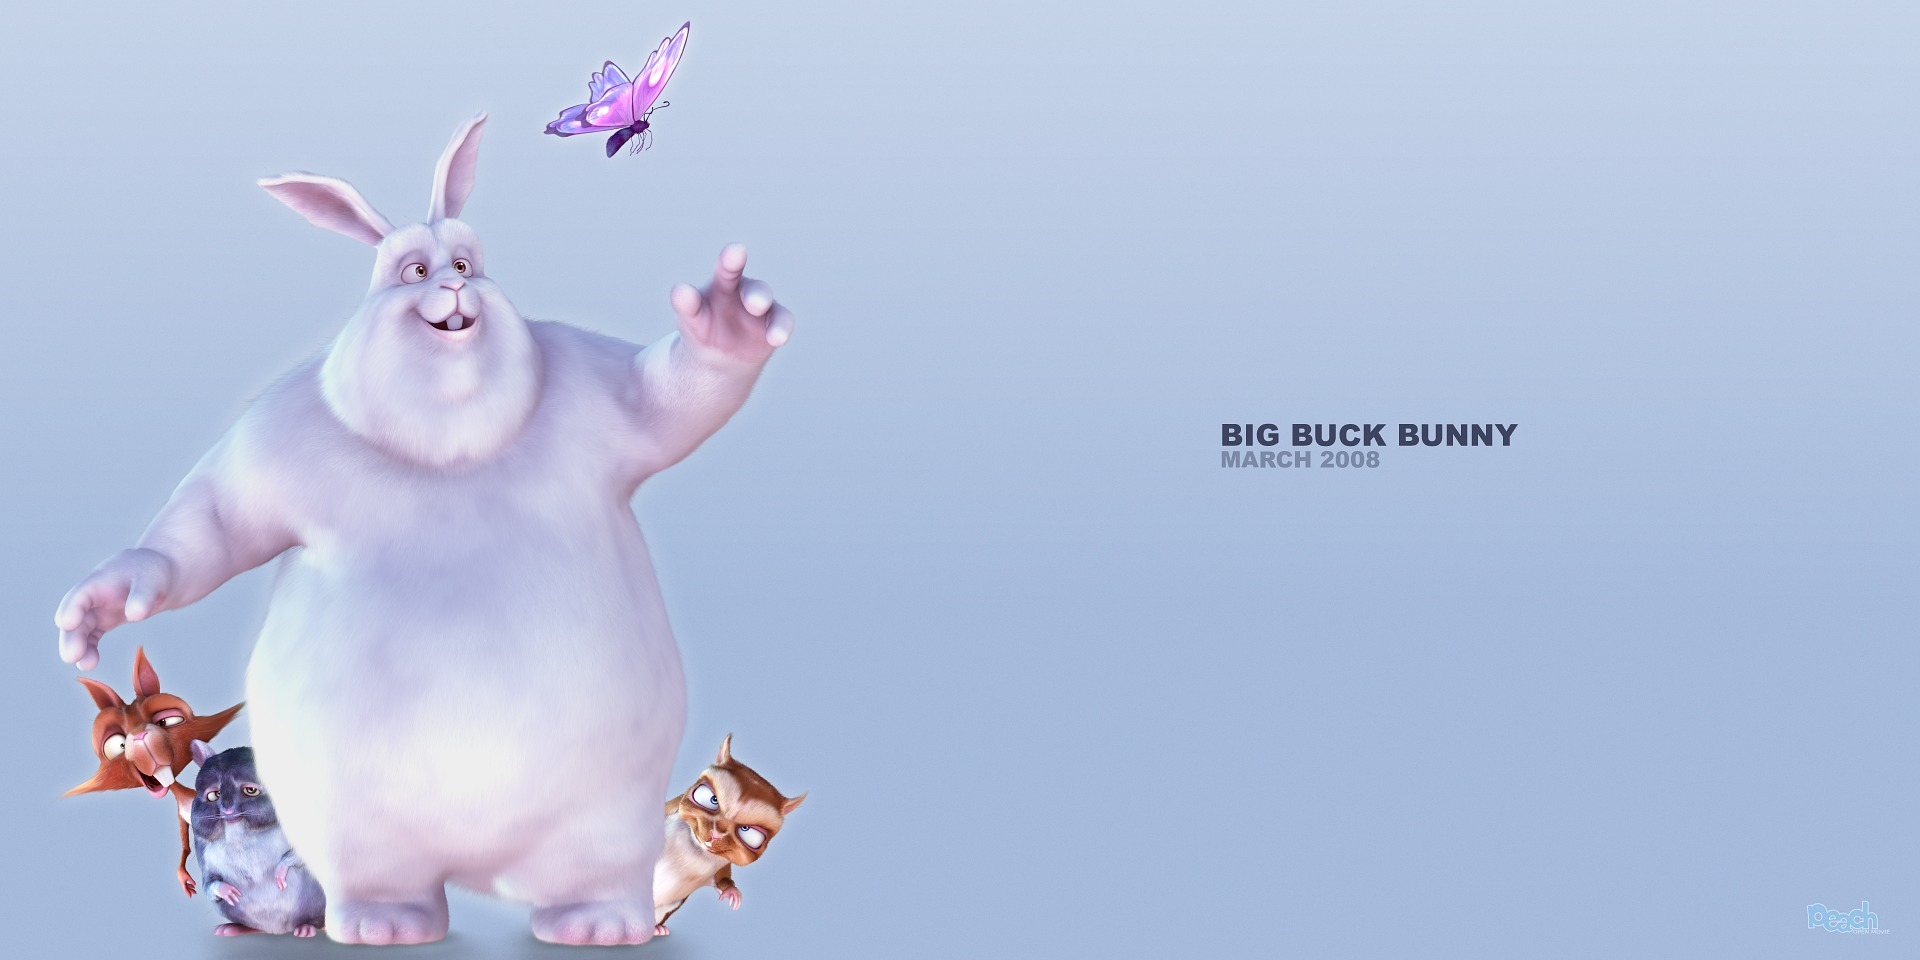 big buck bunny blog archive project peach is pretty proud to